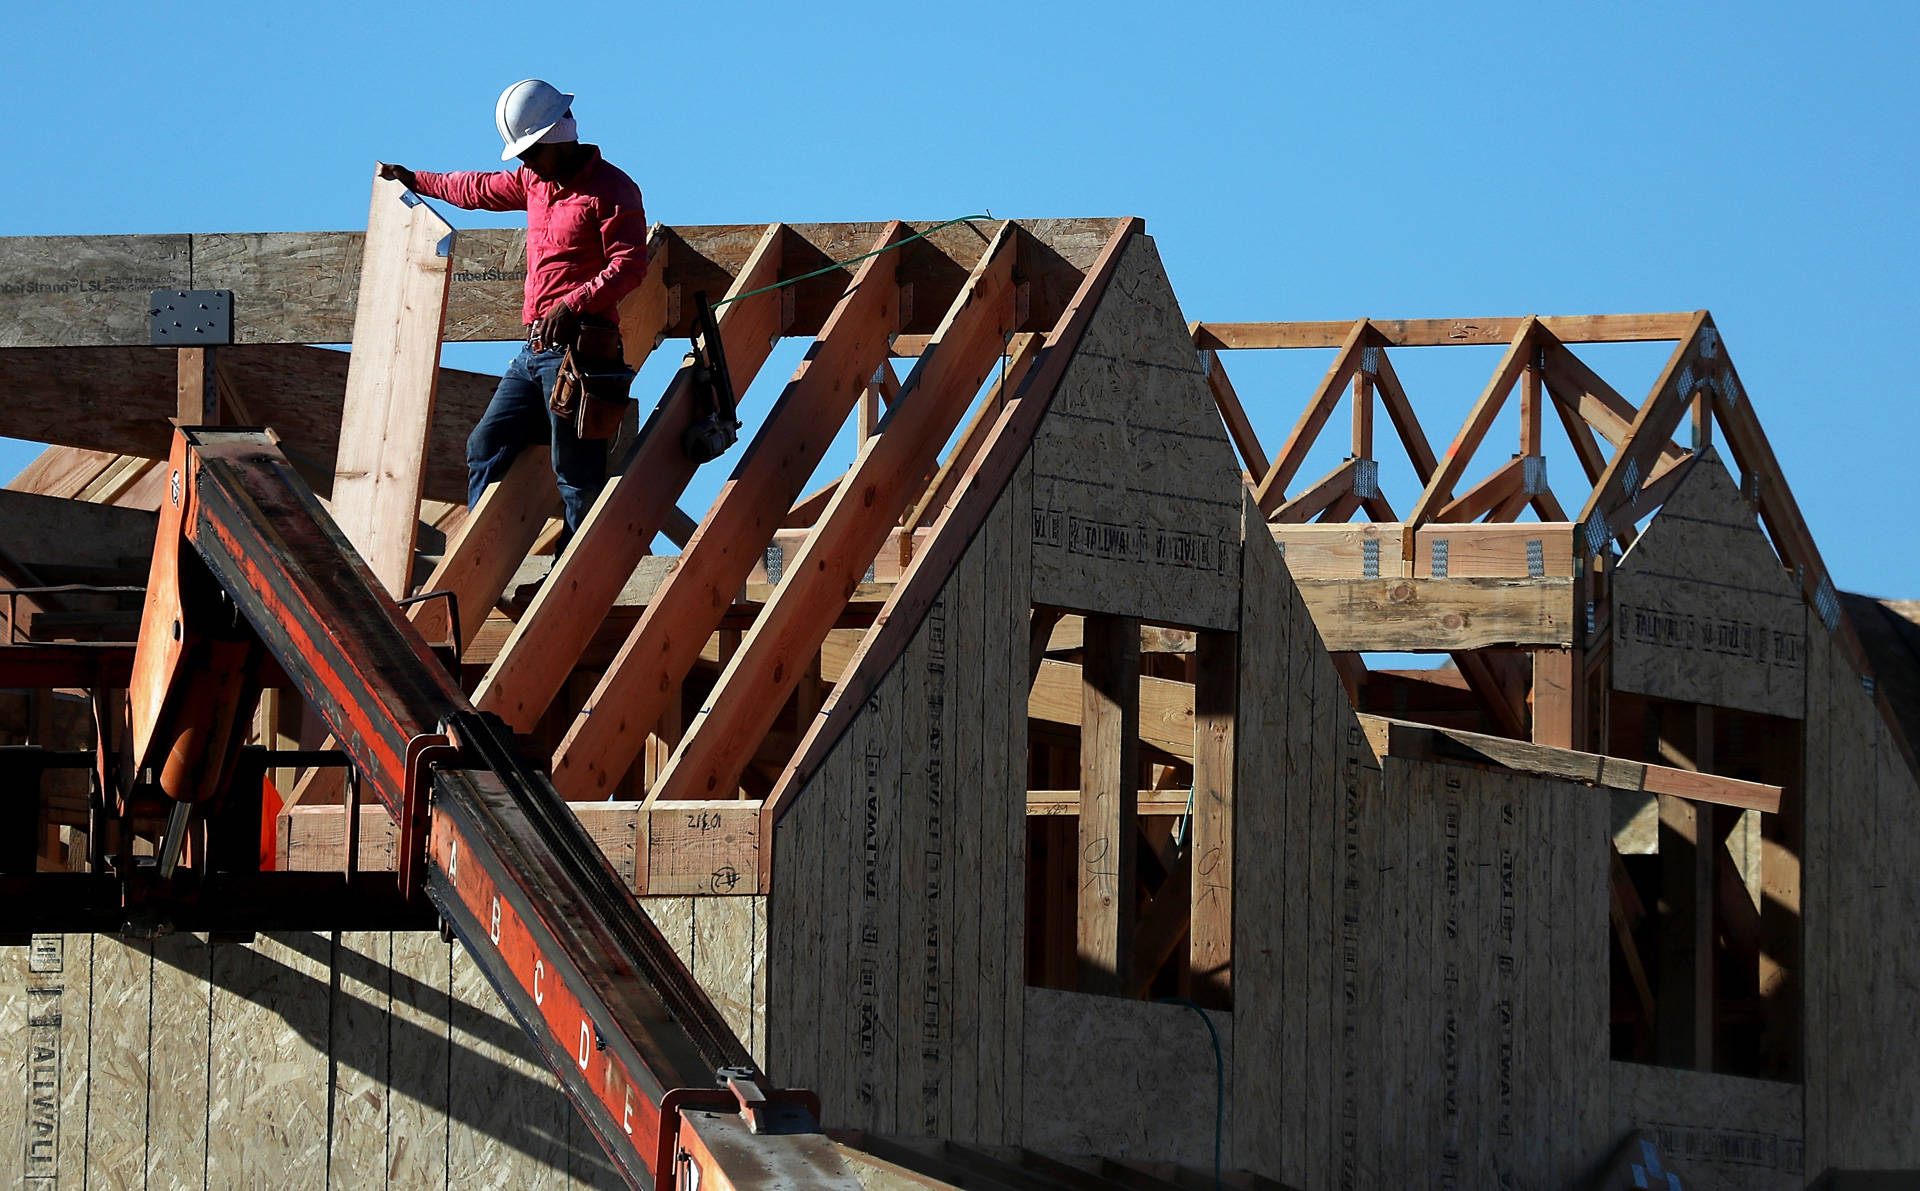 California is producing less than half the new homes it needs to meet demand, according to a new comprehensive analysis by California's Department of Housing and Community Development. Justin Sullivan/Getty Images